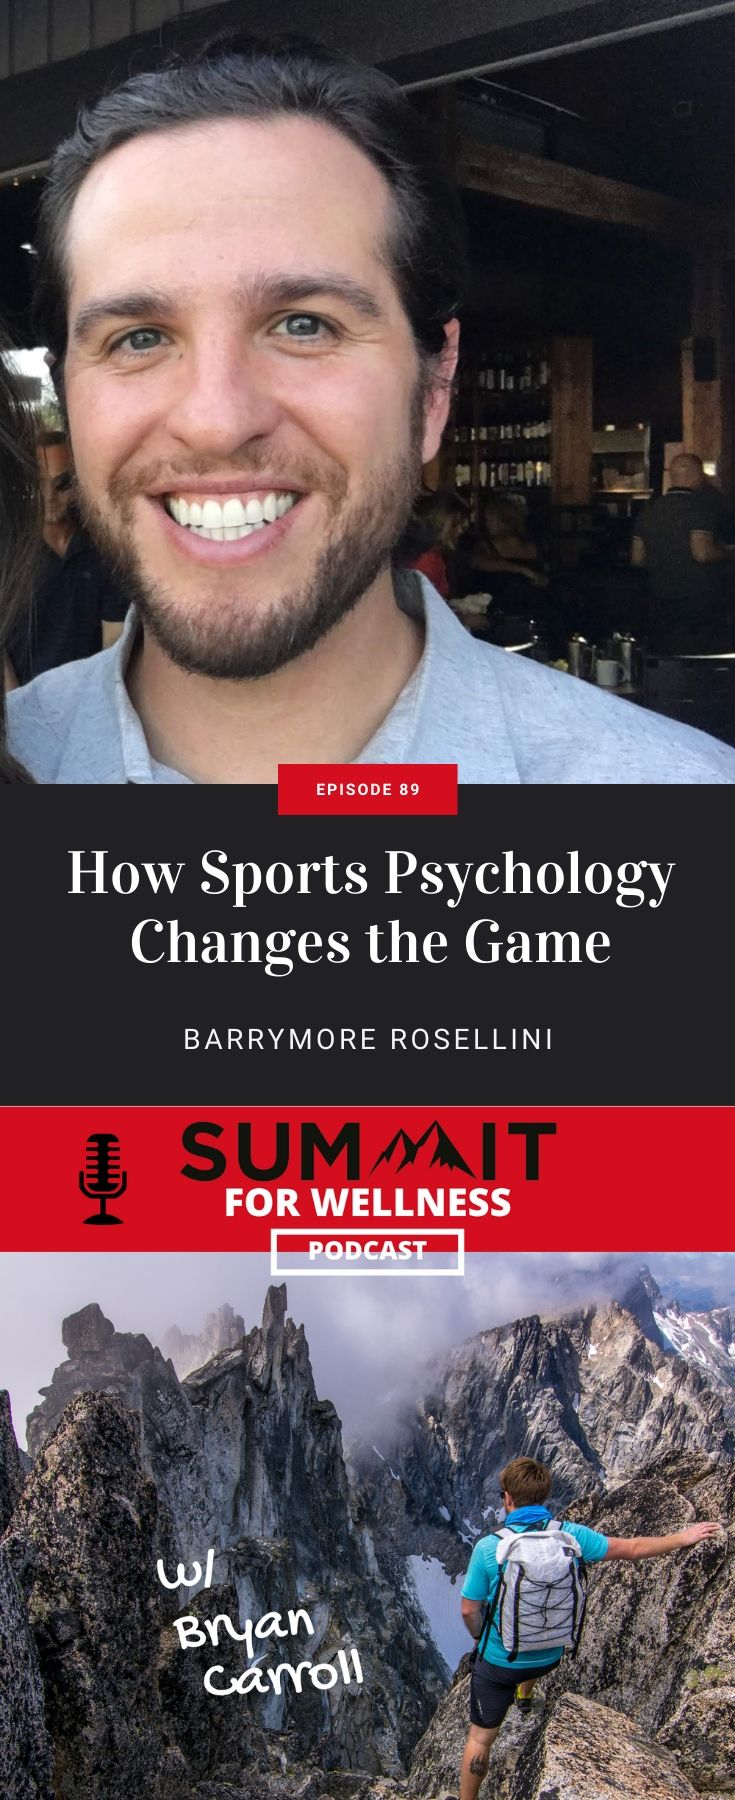 Barrymore Rosellini teaches us how sports psychology plays a role in how athletes perform